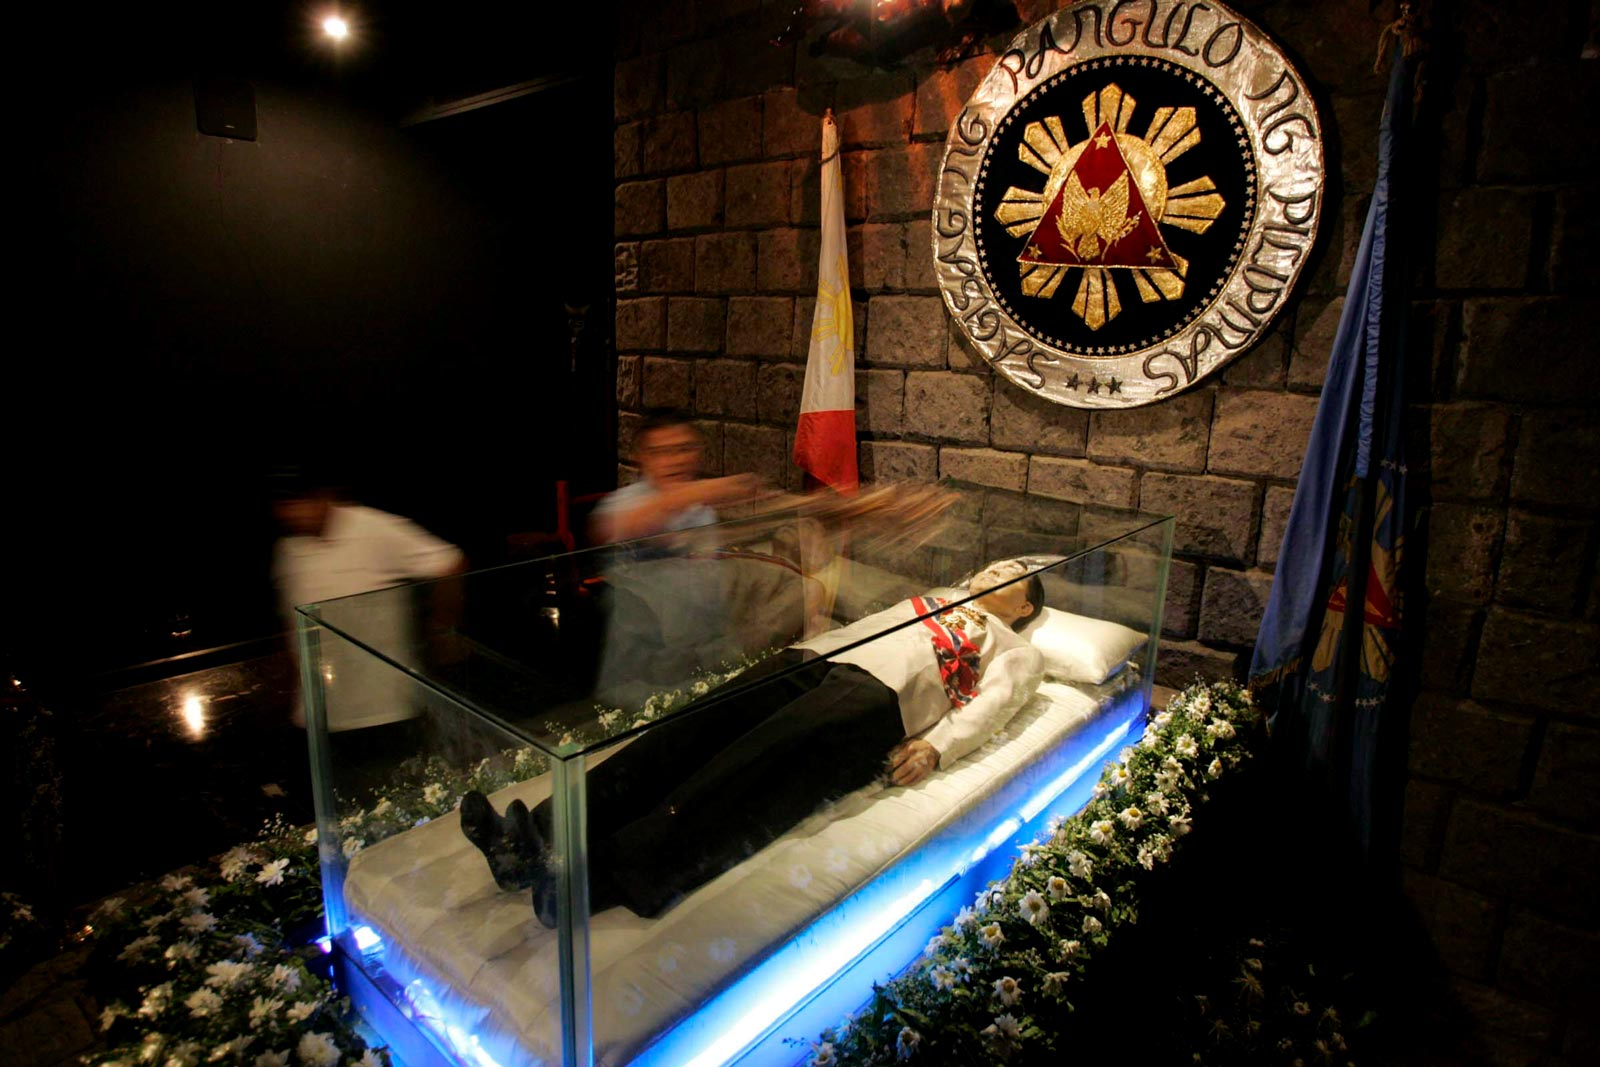 History is how you read it in the Philippines' Marcos Museum